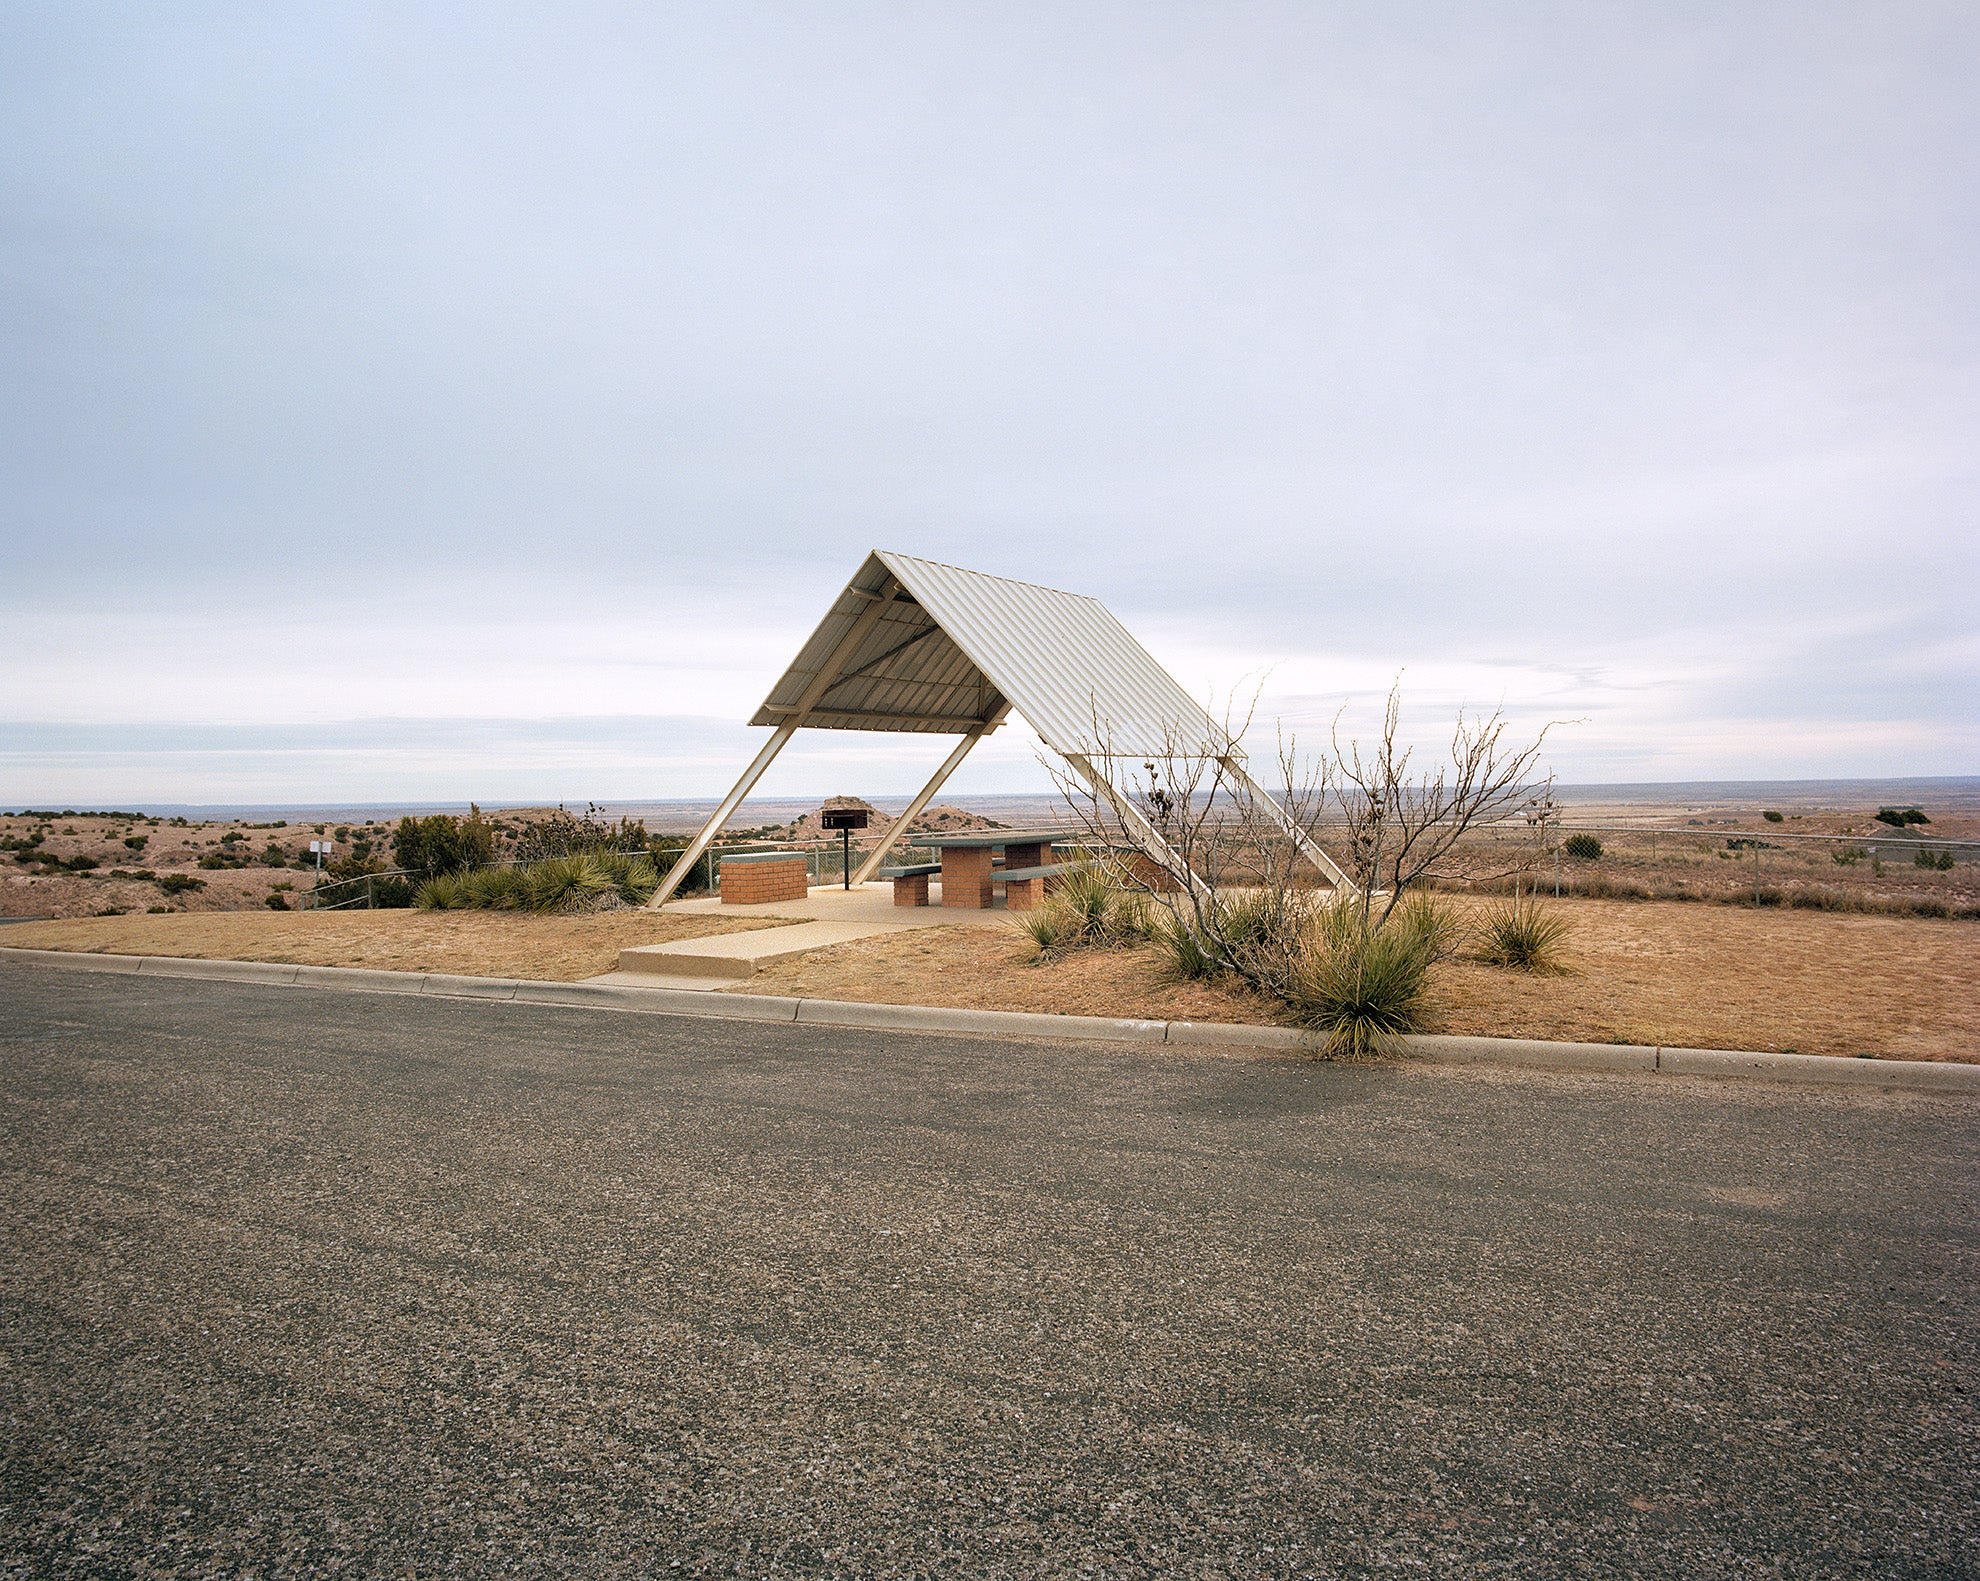 Humble Rest Stops Are Endangered Monuments of America's Highways